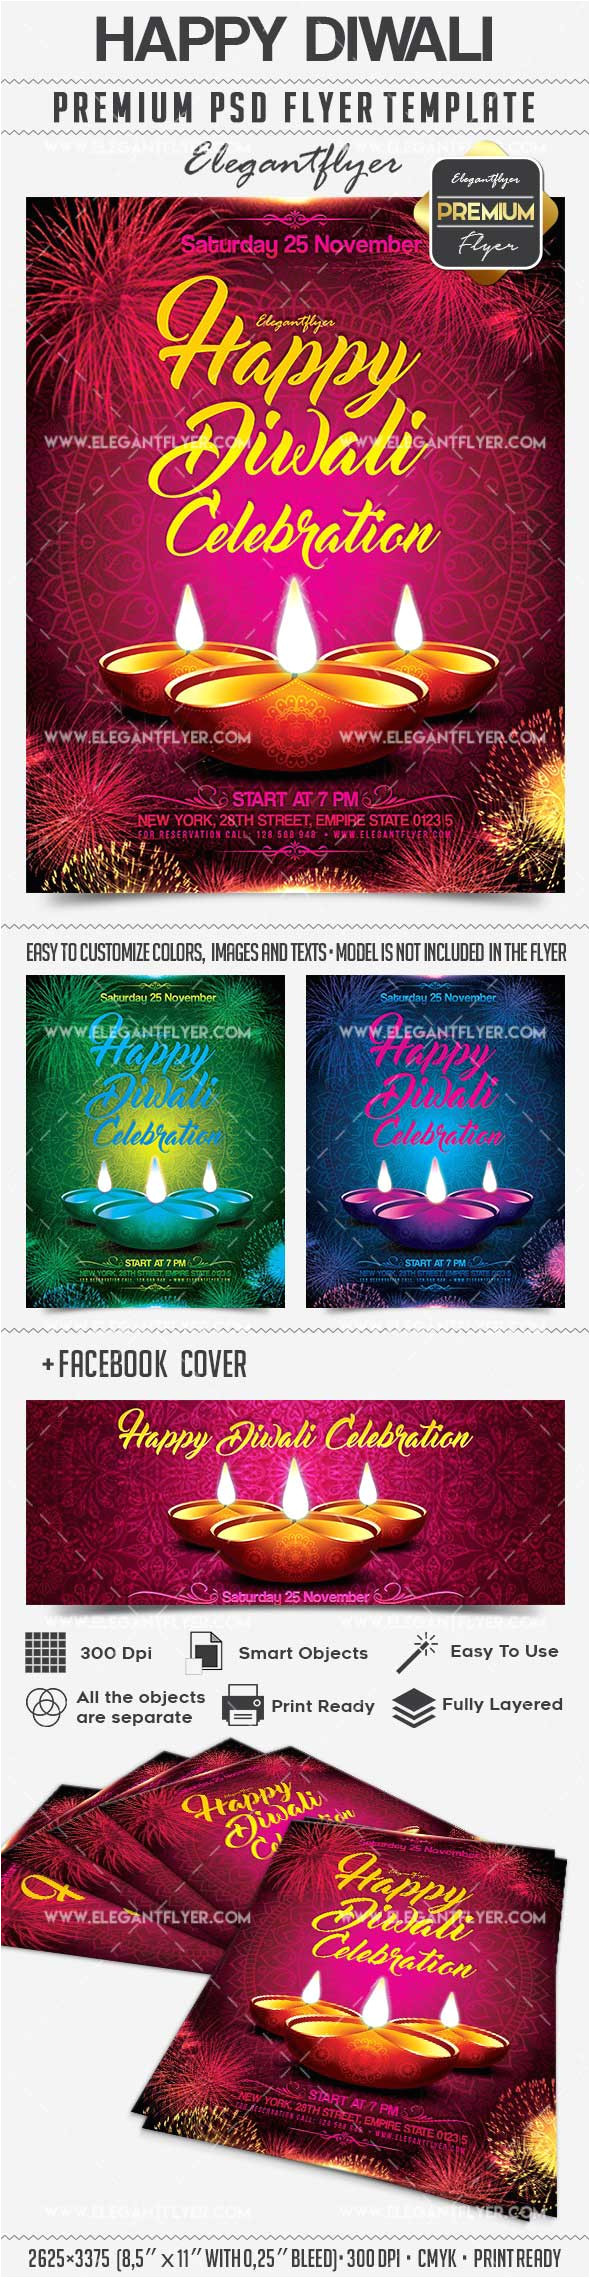 download happy diwali facebook cover flyer template photoshop